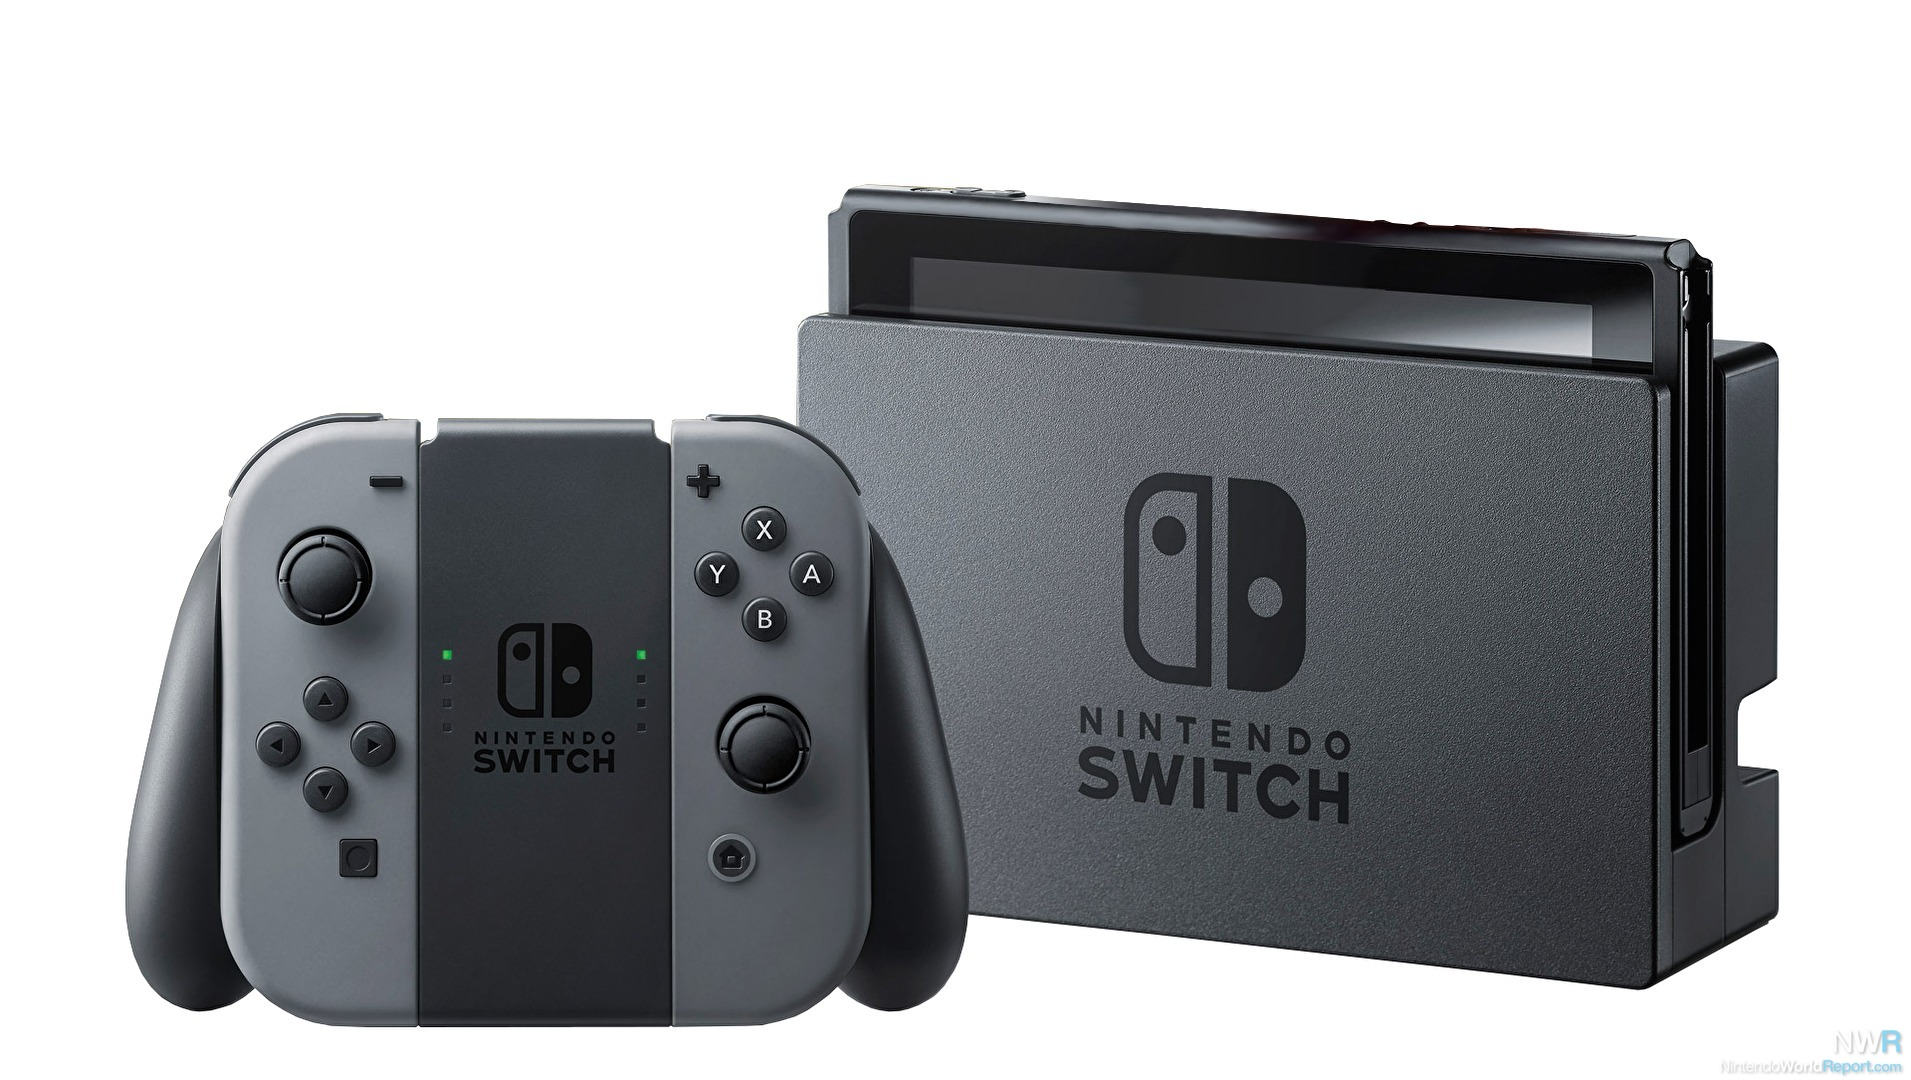 Nintendo Switch has passed the GameCube in lifetime sales